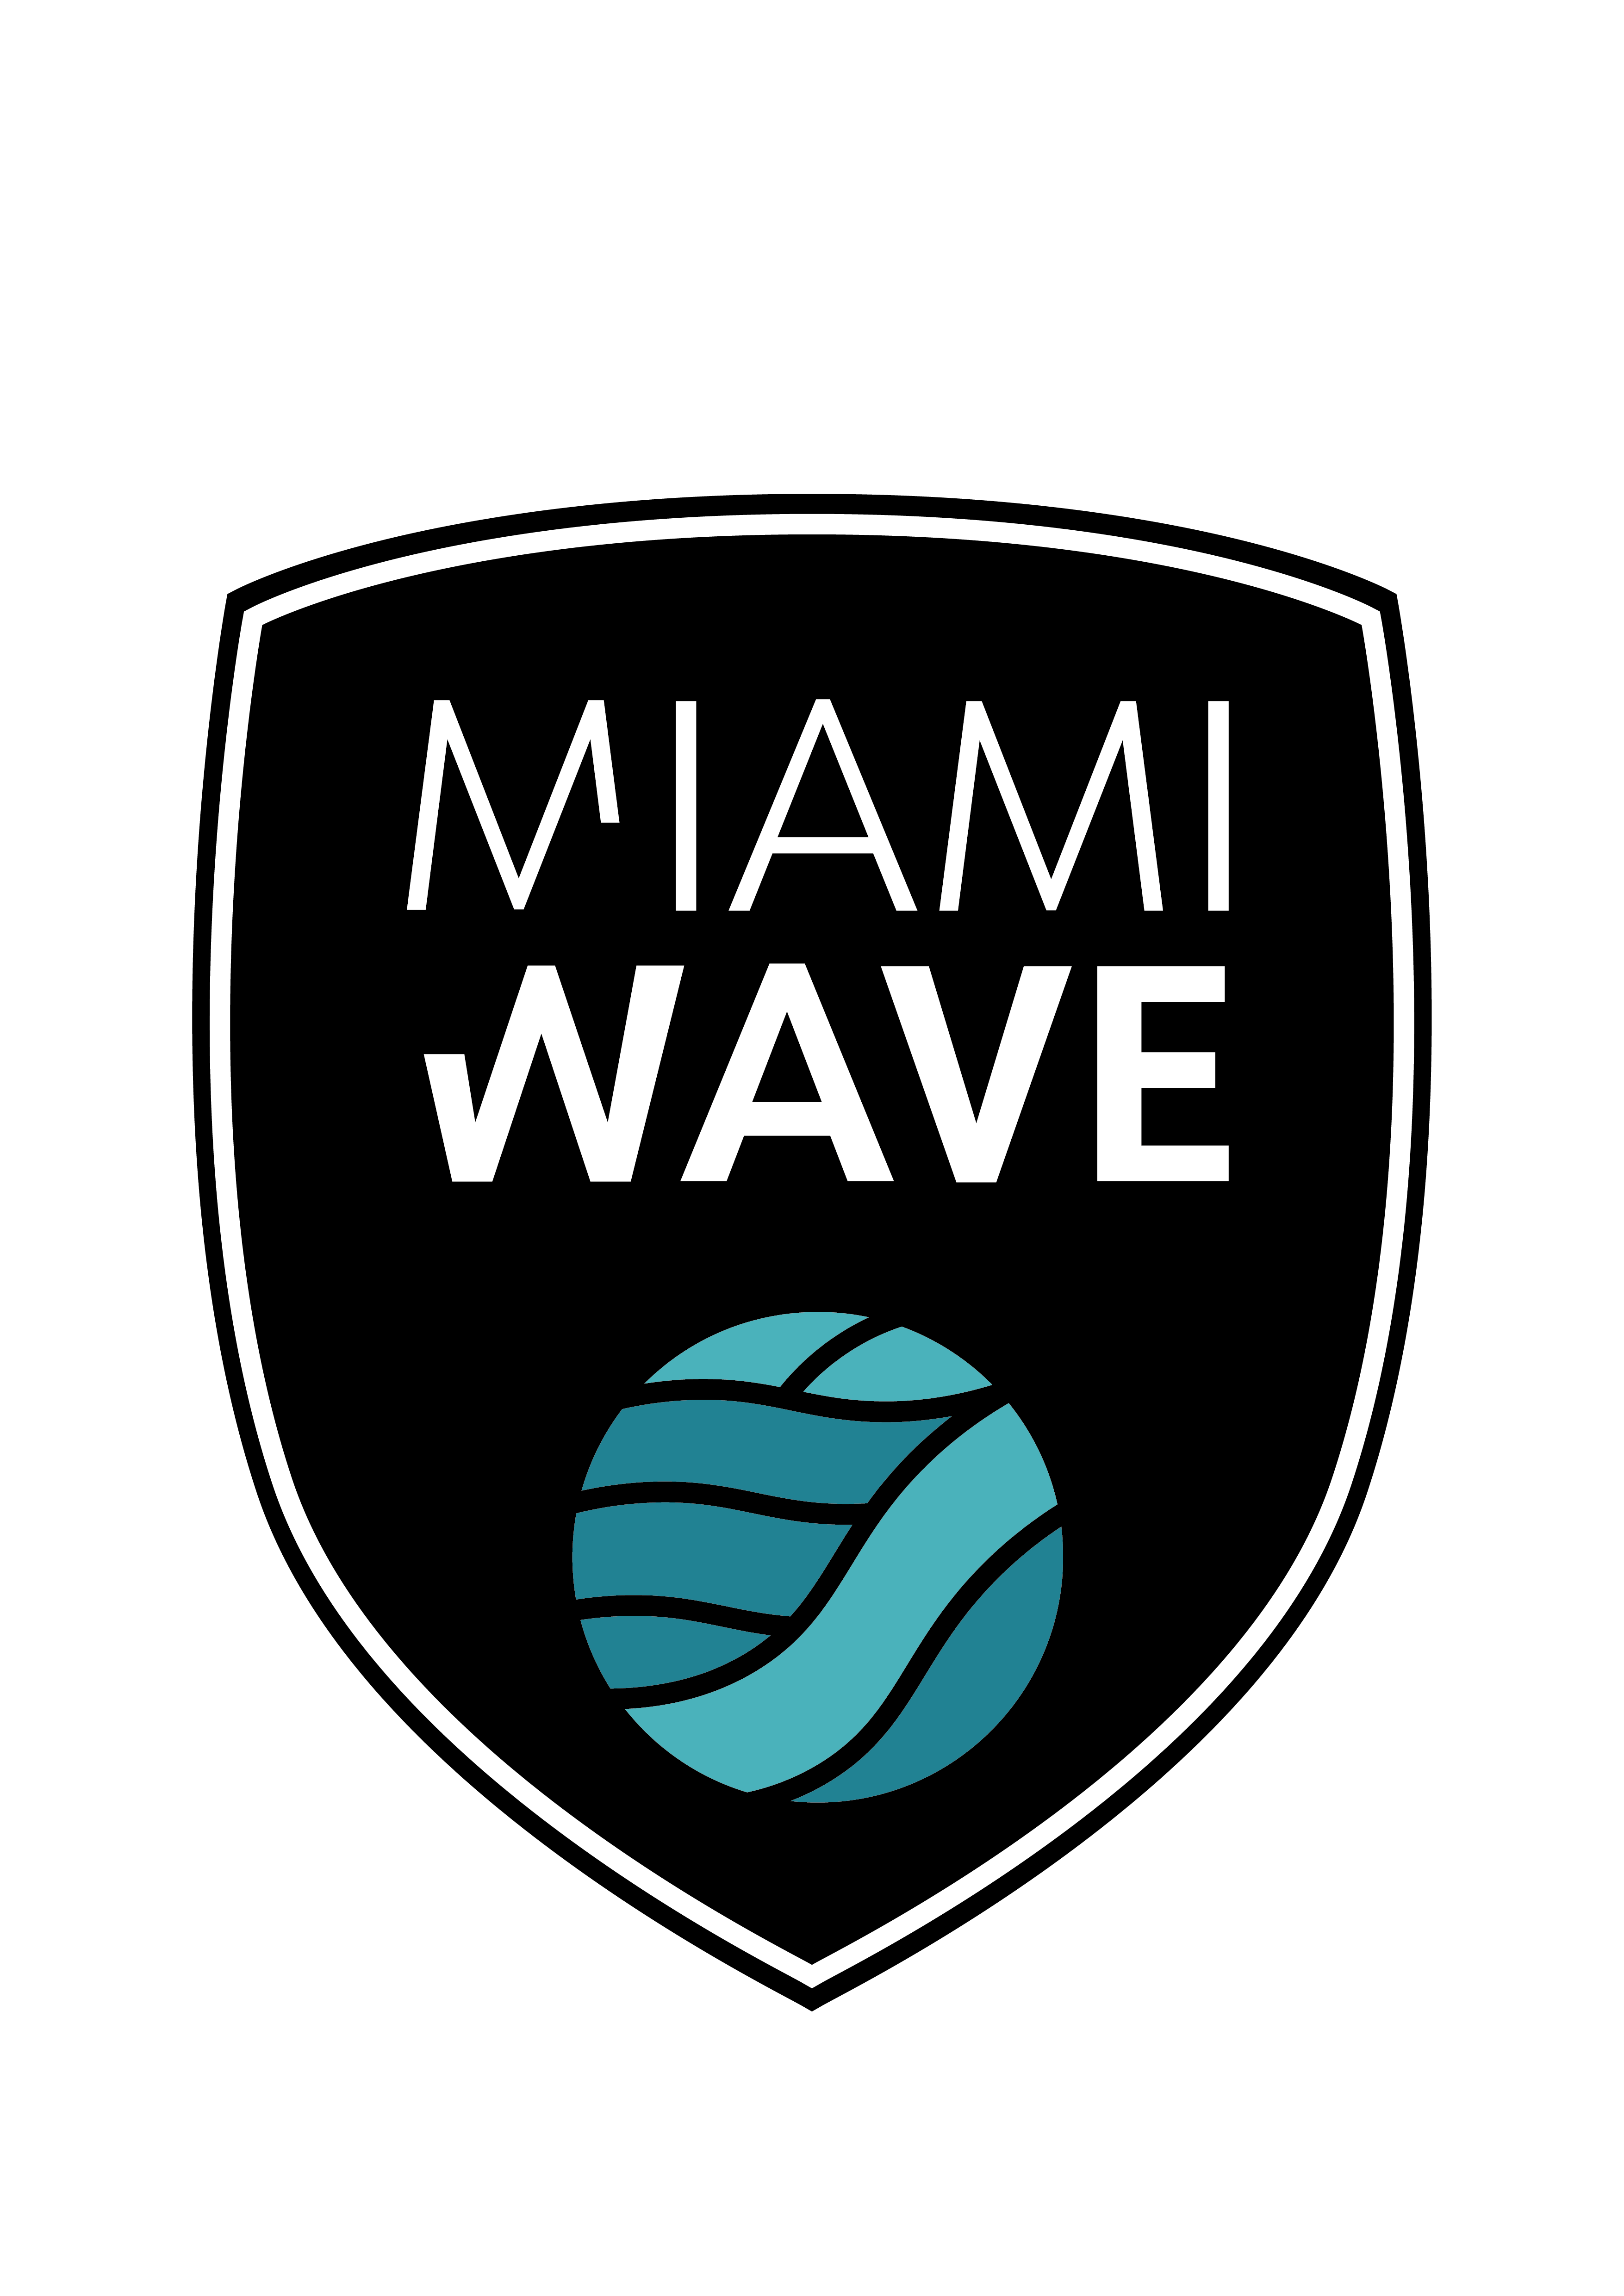 Miami Wave Volleyball Club Announces Their Partnership With Via Emilia 9 (Miami Beach) and Via Emilia 9 Garden (Midtown Miami)